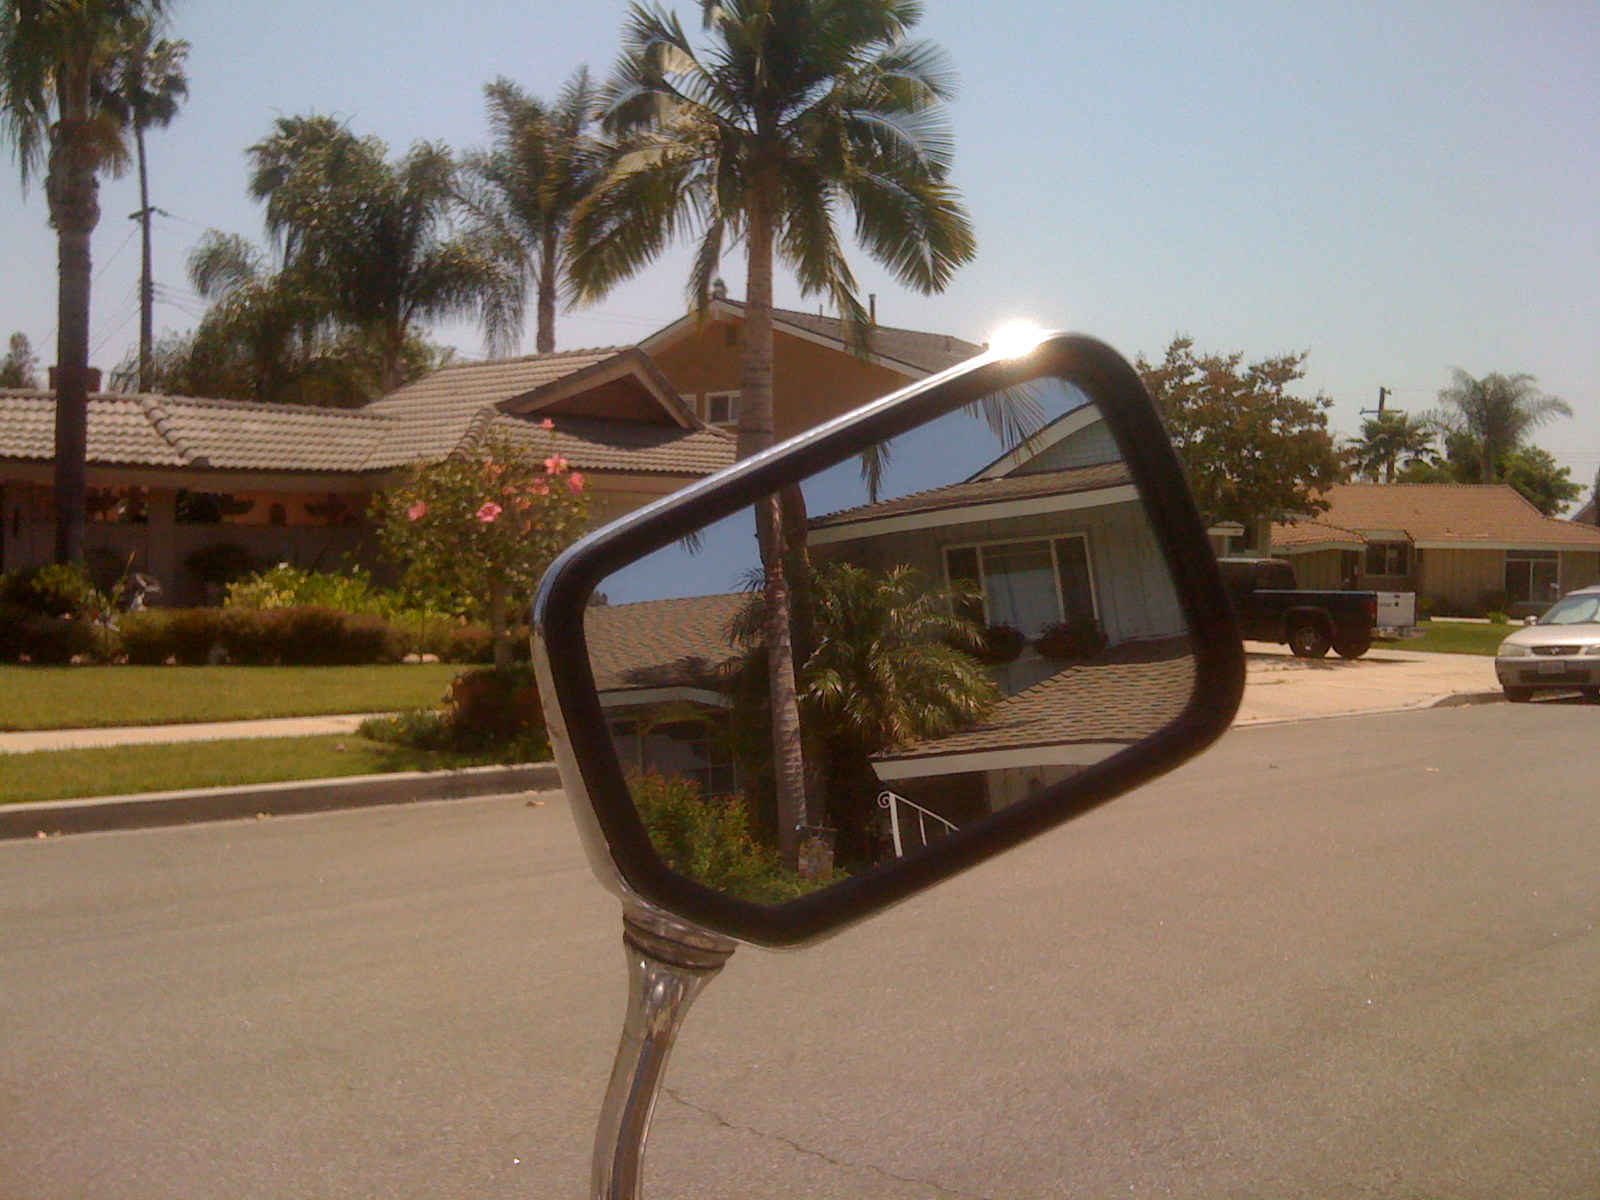 Reflections on My House